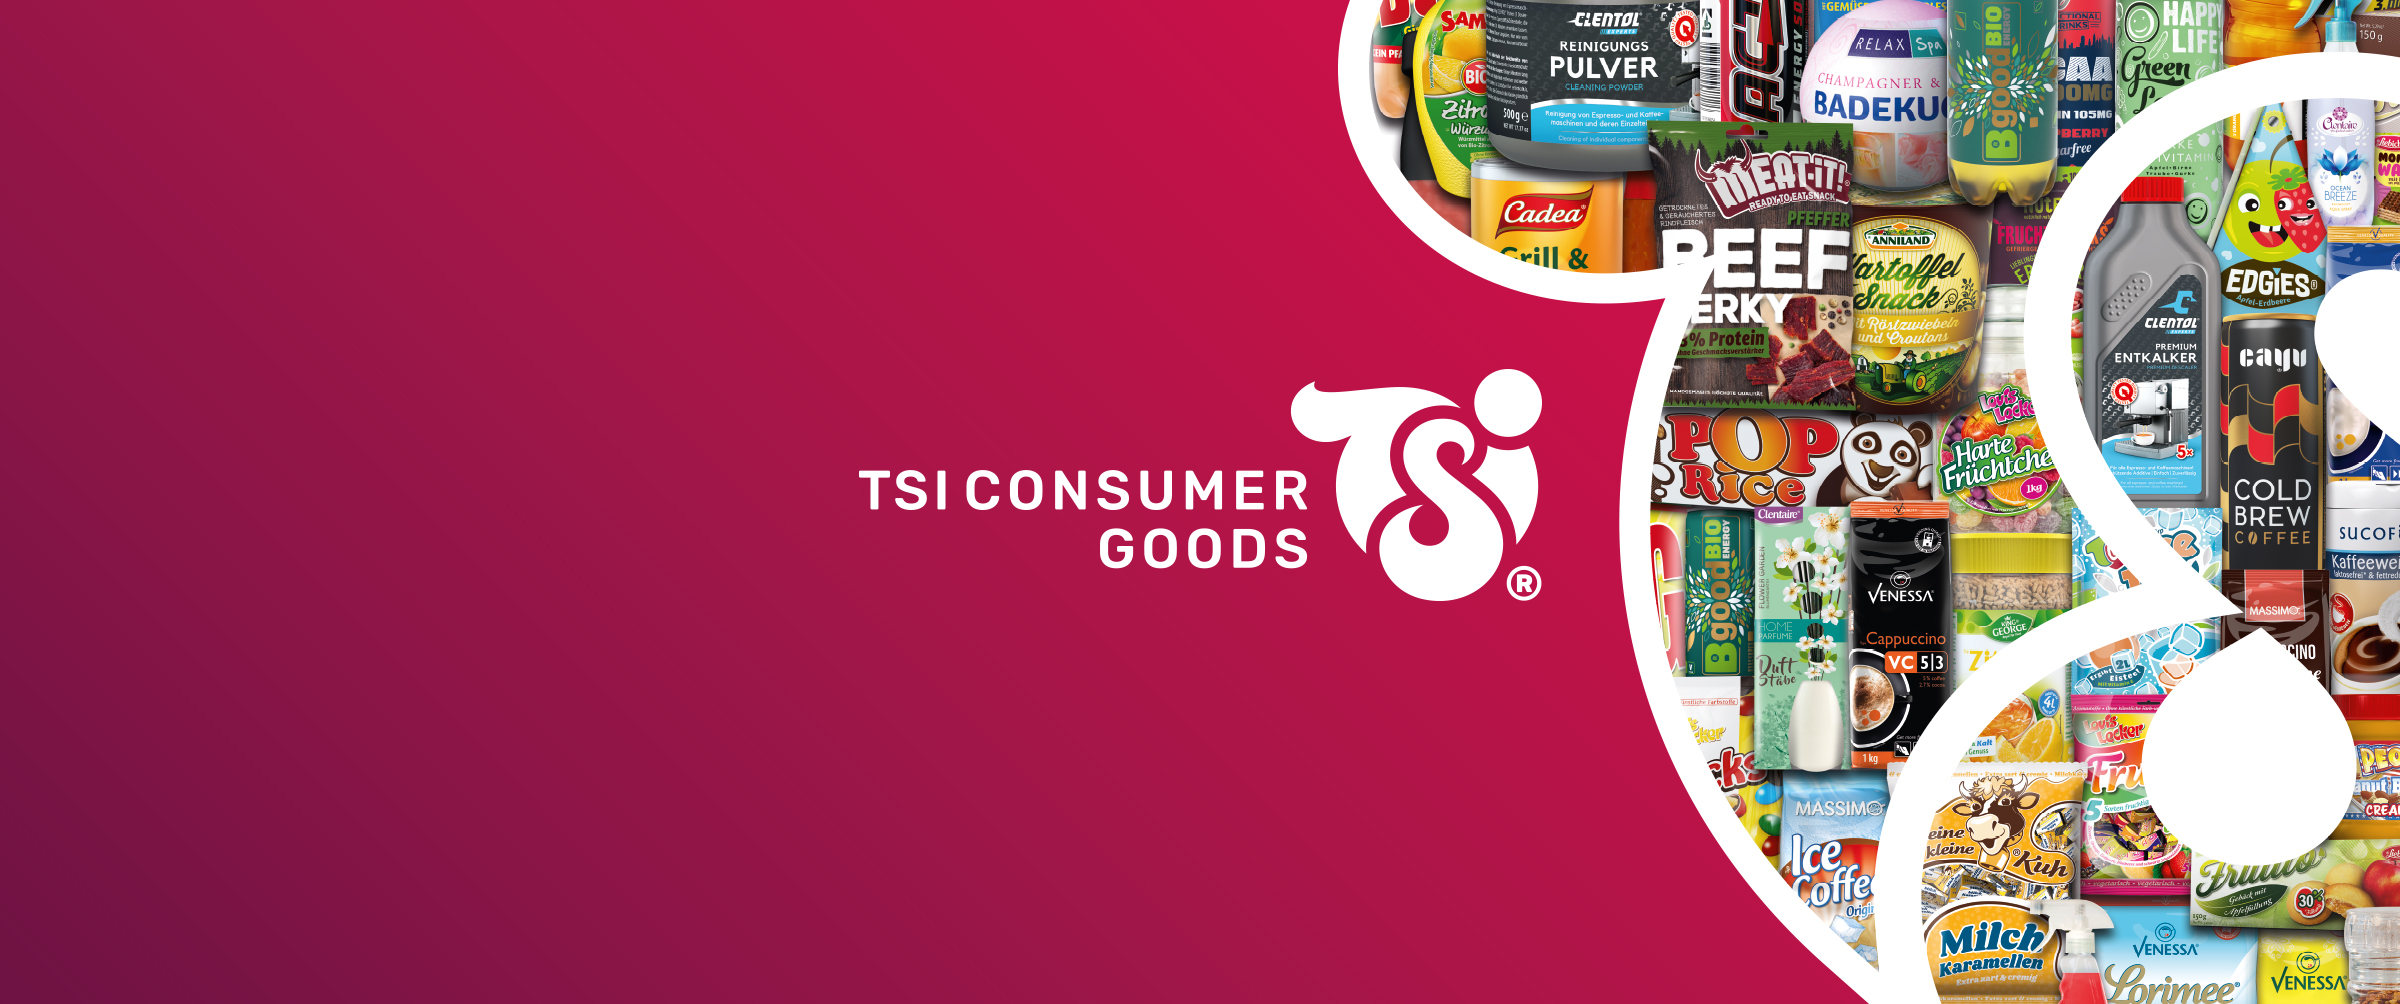 https://www.tsi.de/app/uploads/2019/06/TSI_Start_Banner3.jpg